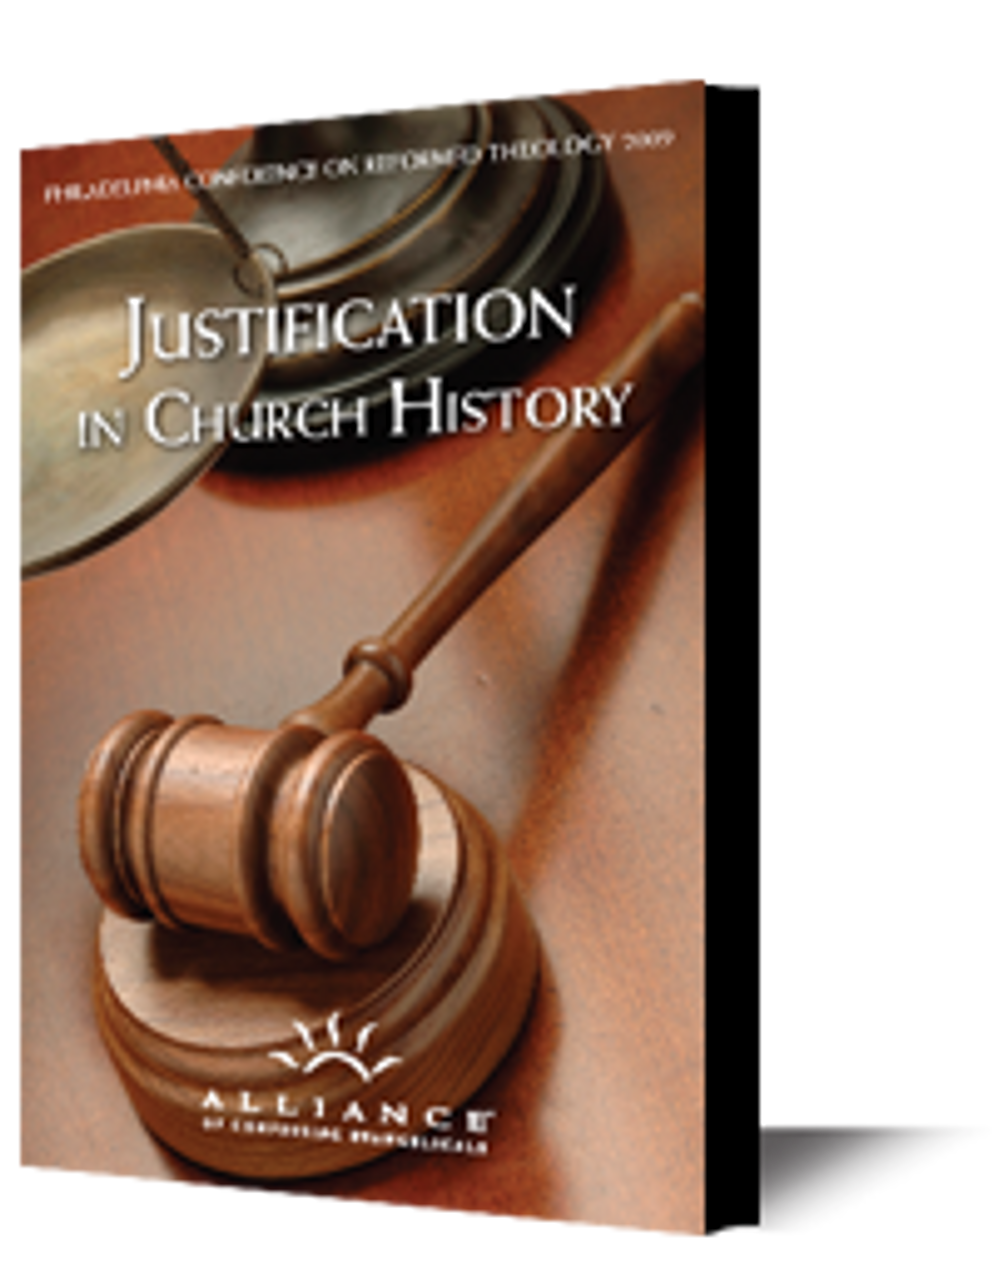 Justification in Church History (CD Set)